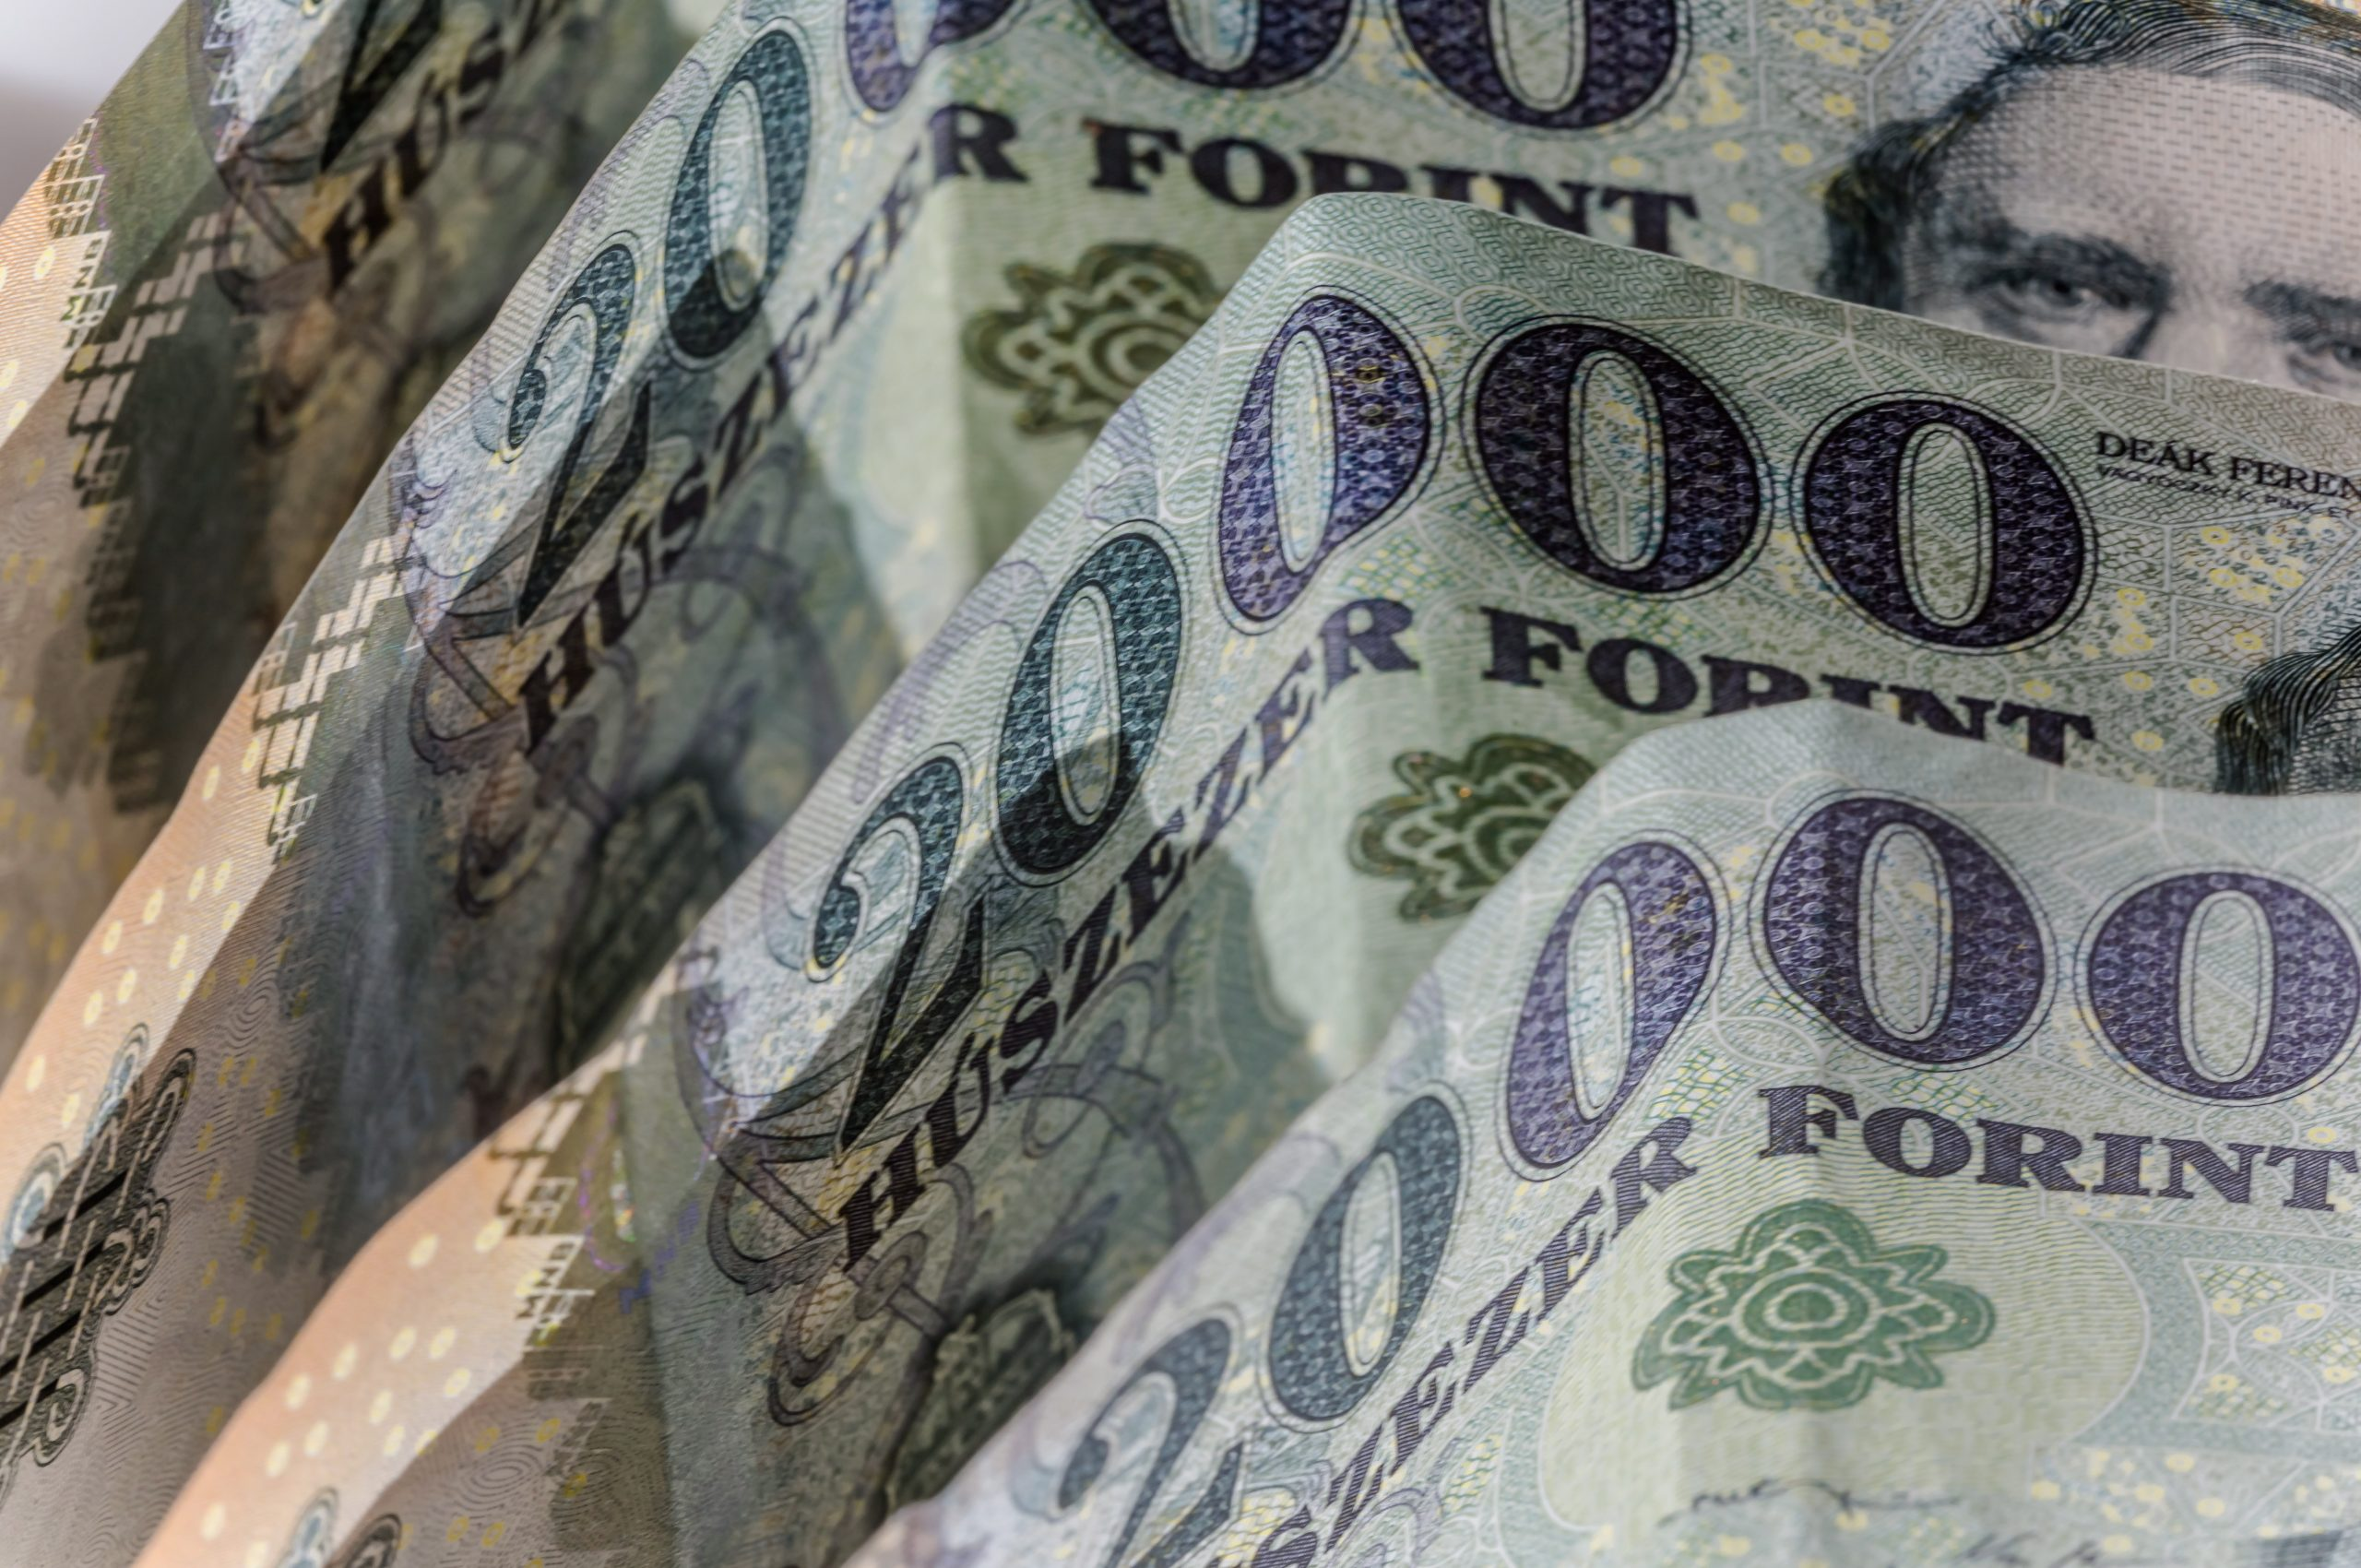 Less Than 5,000 Hungarian Families Own 30% of Total Domestic Net Financial Wealth